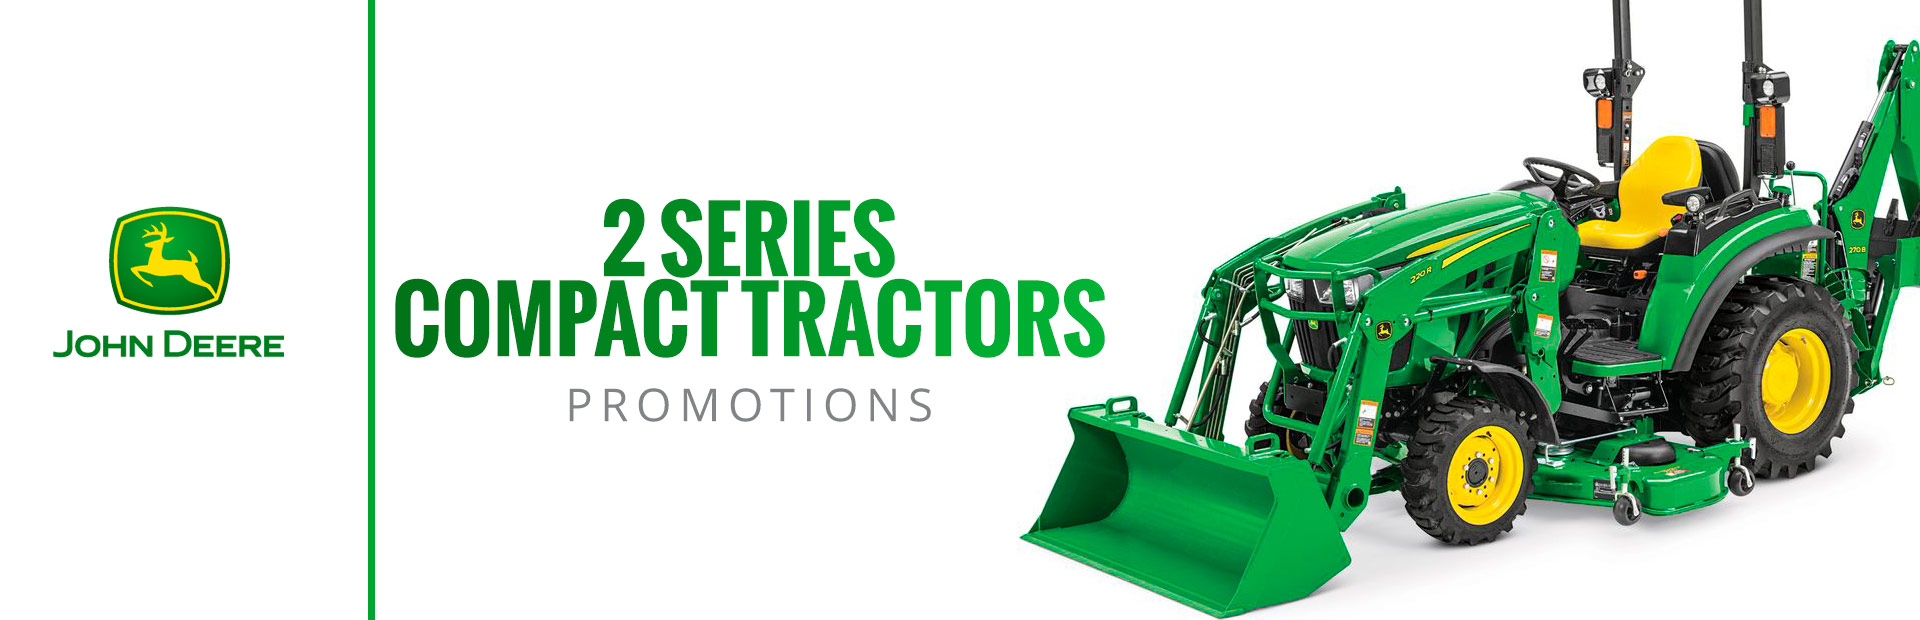 2 Series Compact Tractors